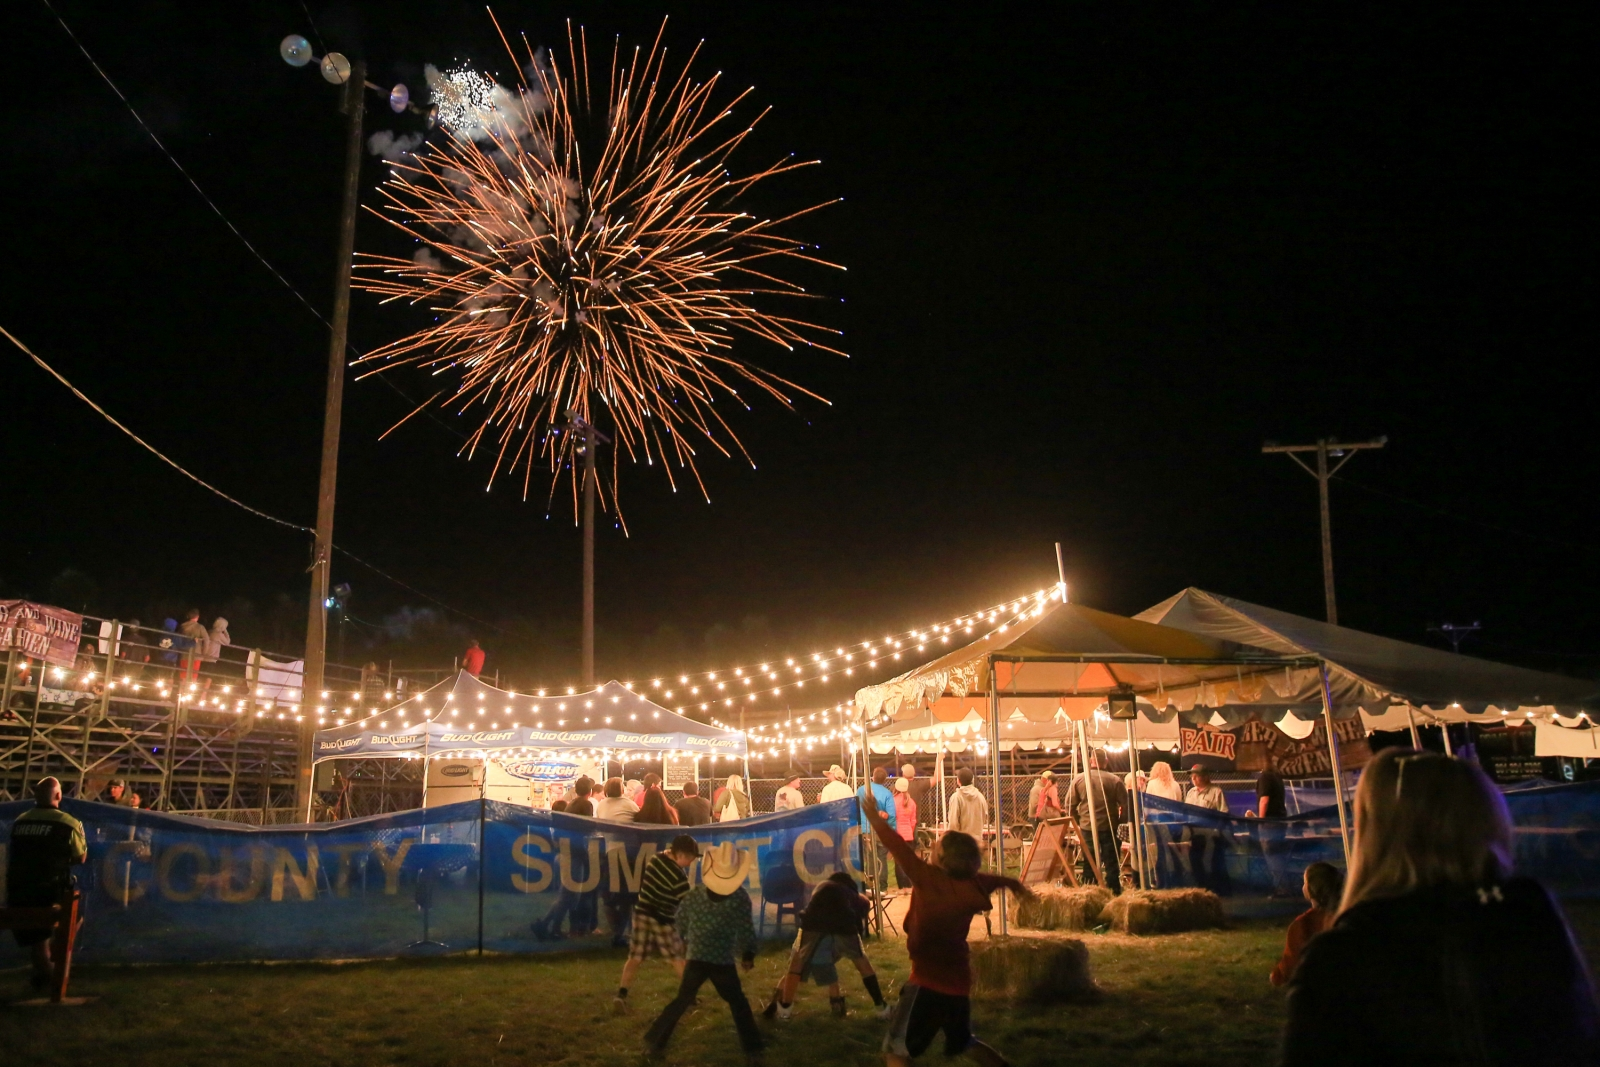 Fairground and Event Master Plans